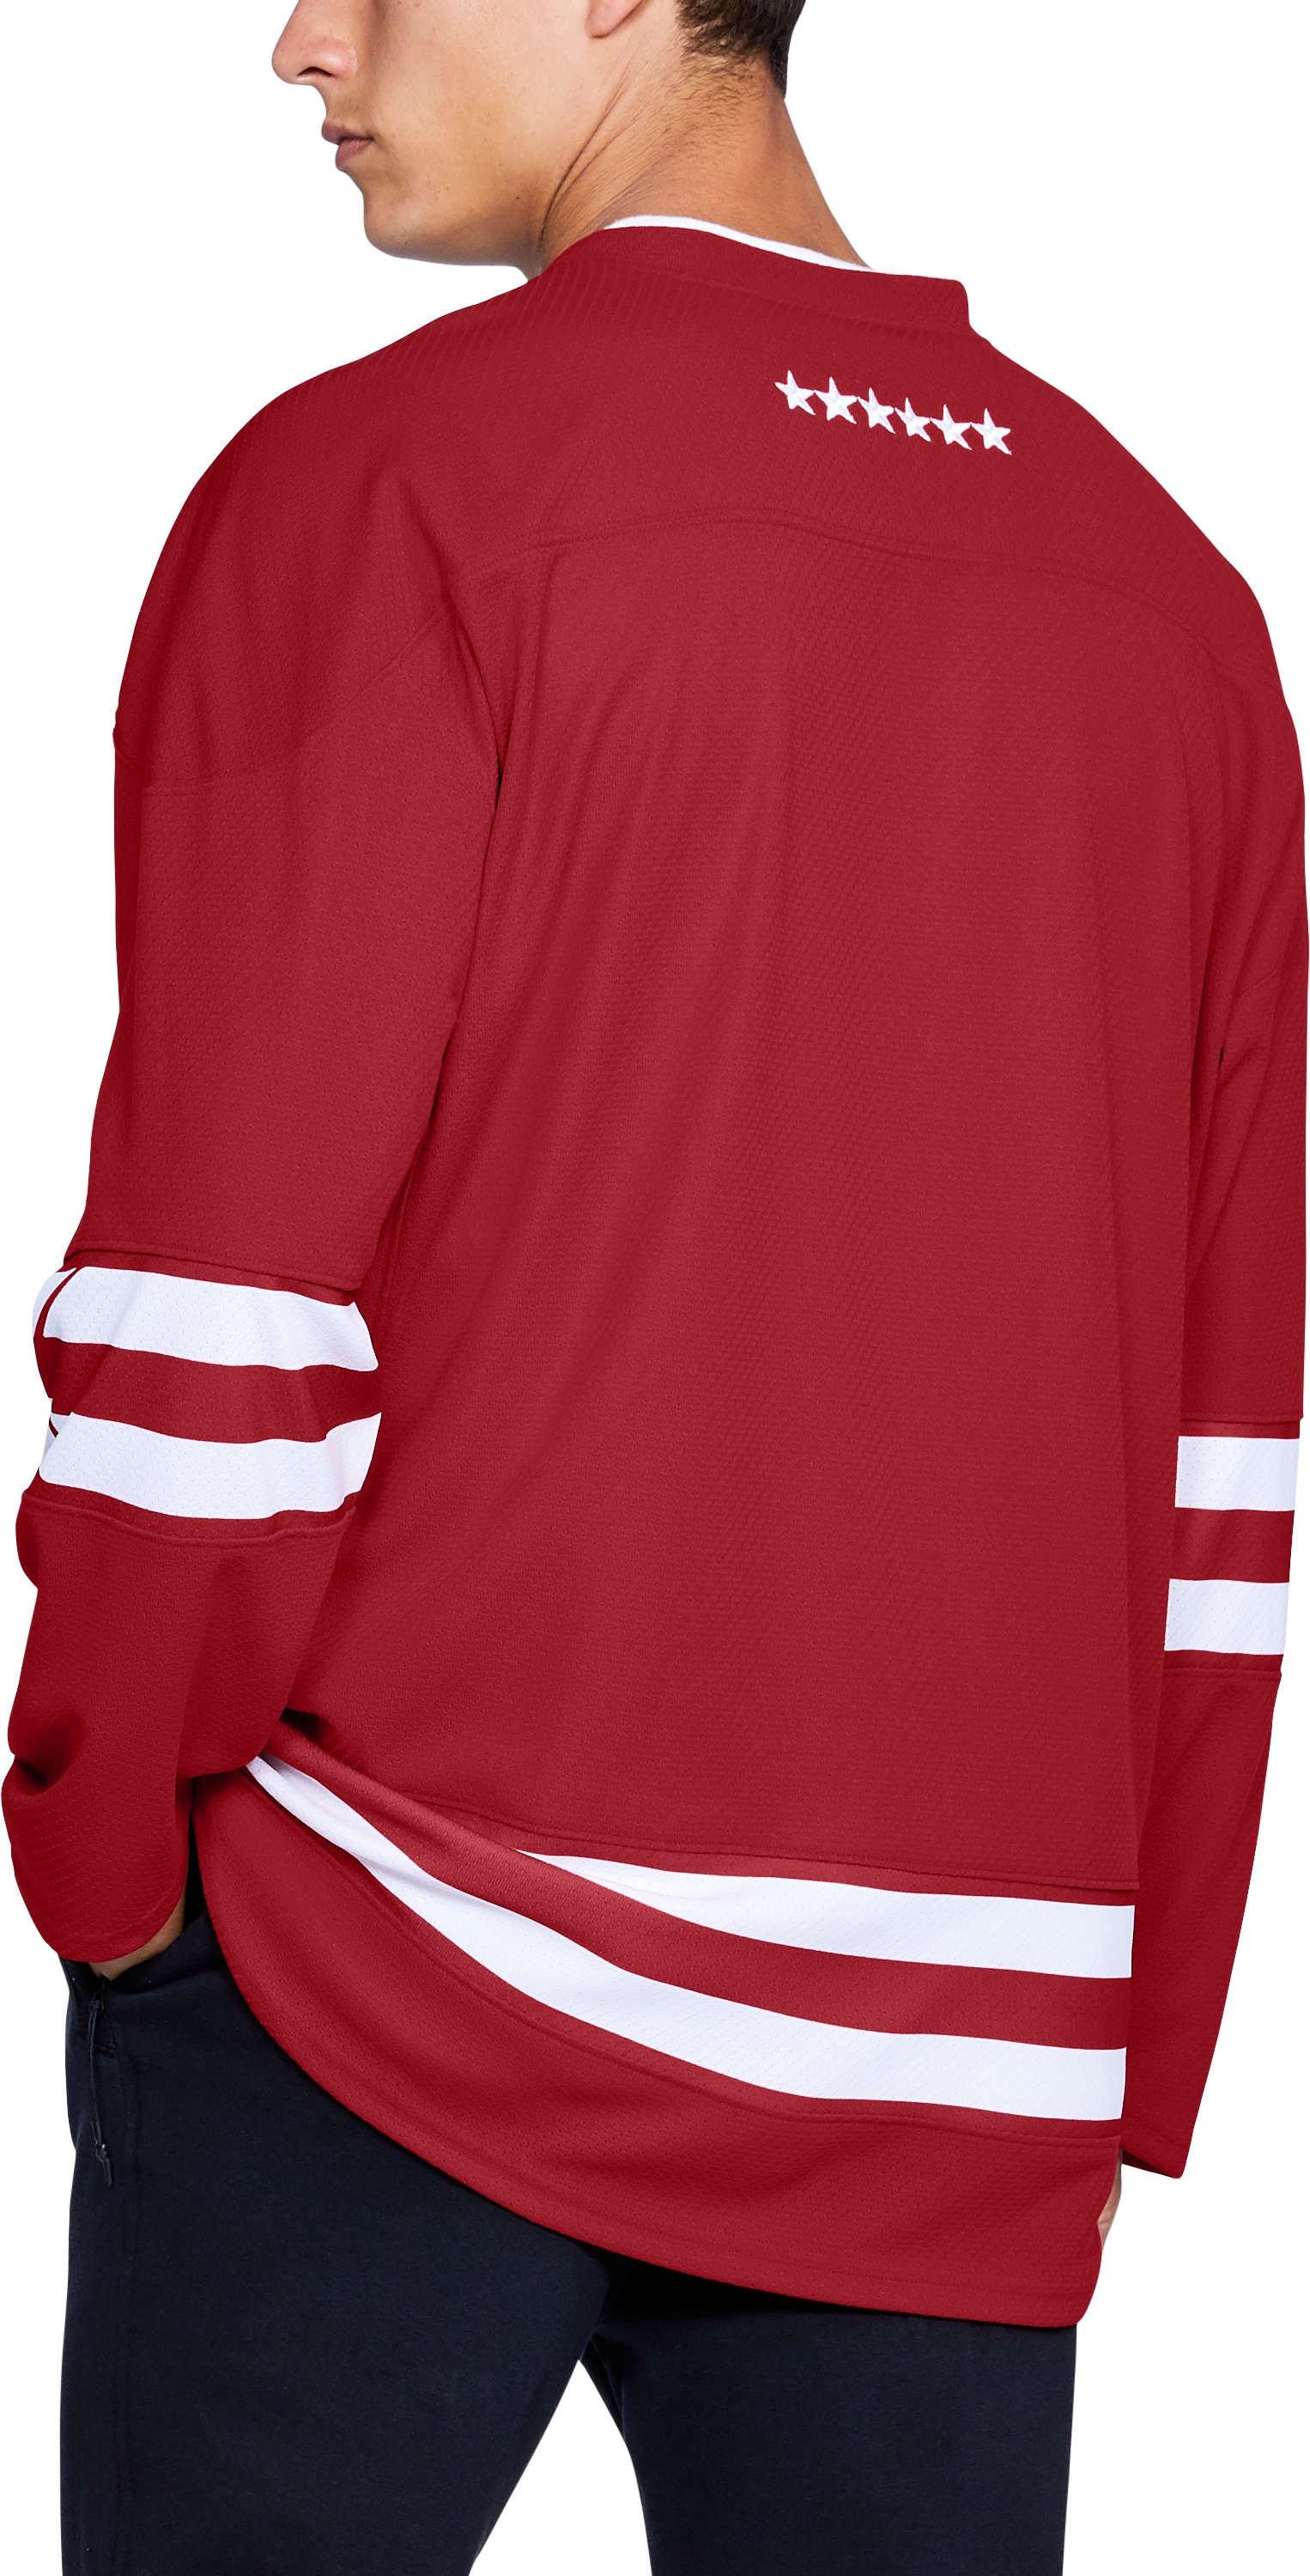 Men's Wisconsin Hockey Replica Jersey, Flawless,